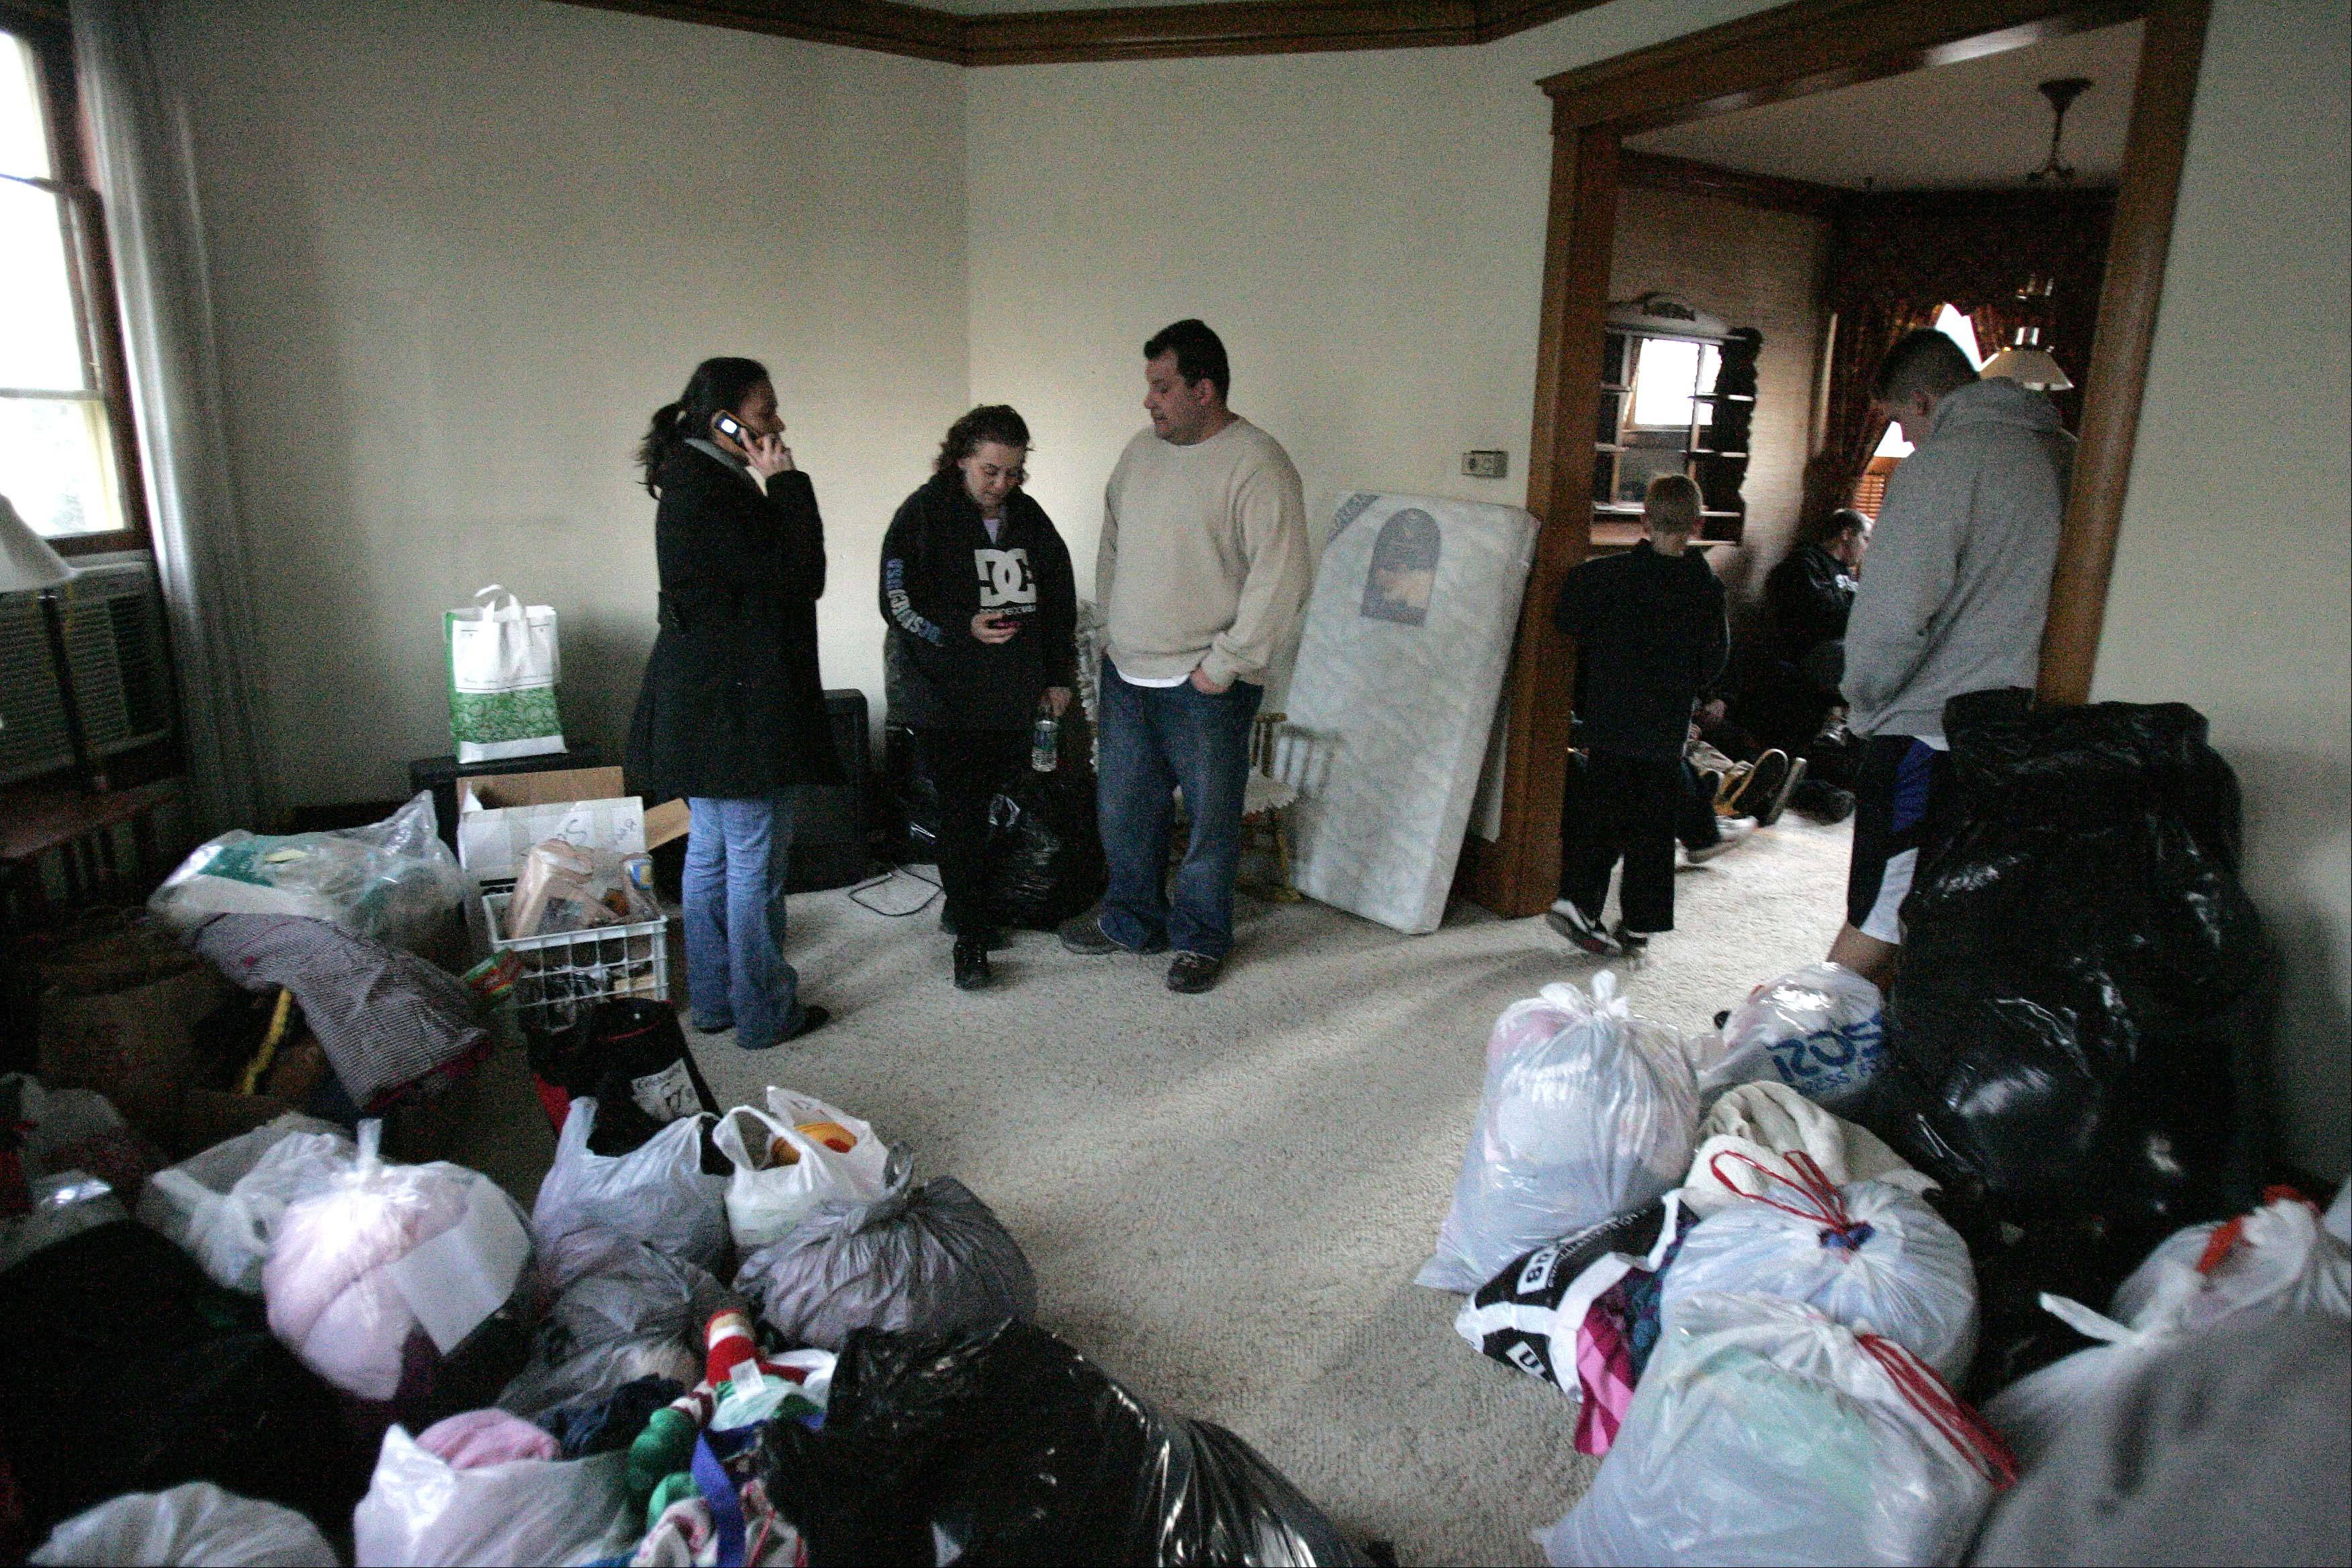 Amy Warner, left, talks to Michelle Konecki and Jack Fisher among a floor filled with donated items. St. Thomas More Church in Elgin amassed bags full of supplies to help the family get back on its feet. And members of the St. Edward High School football team and other students helped move the family into its donated digs.